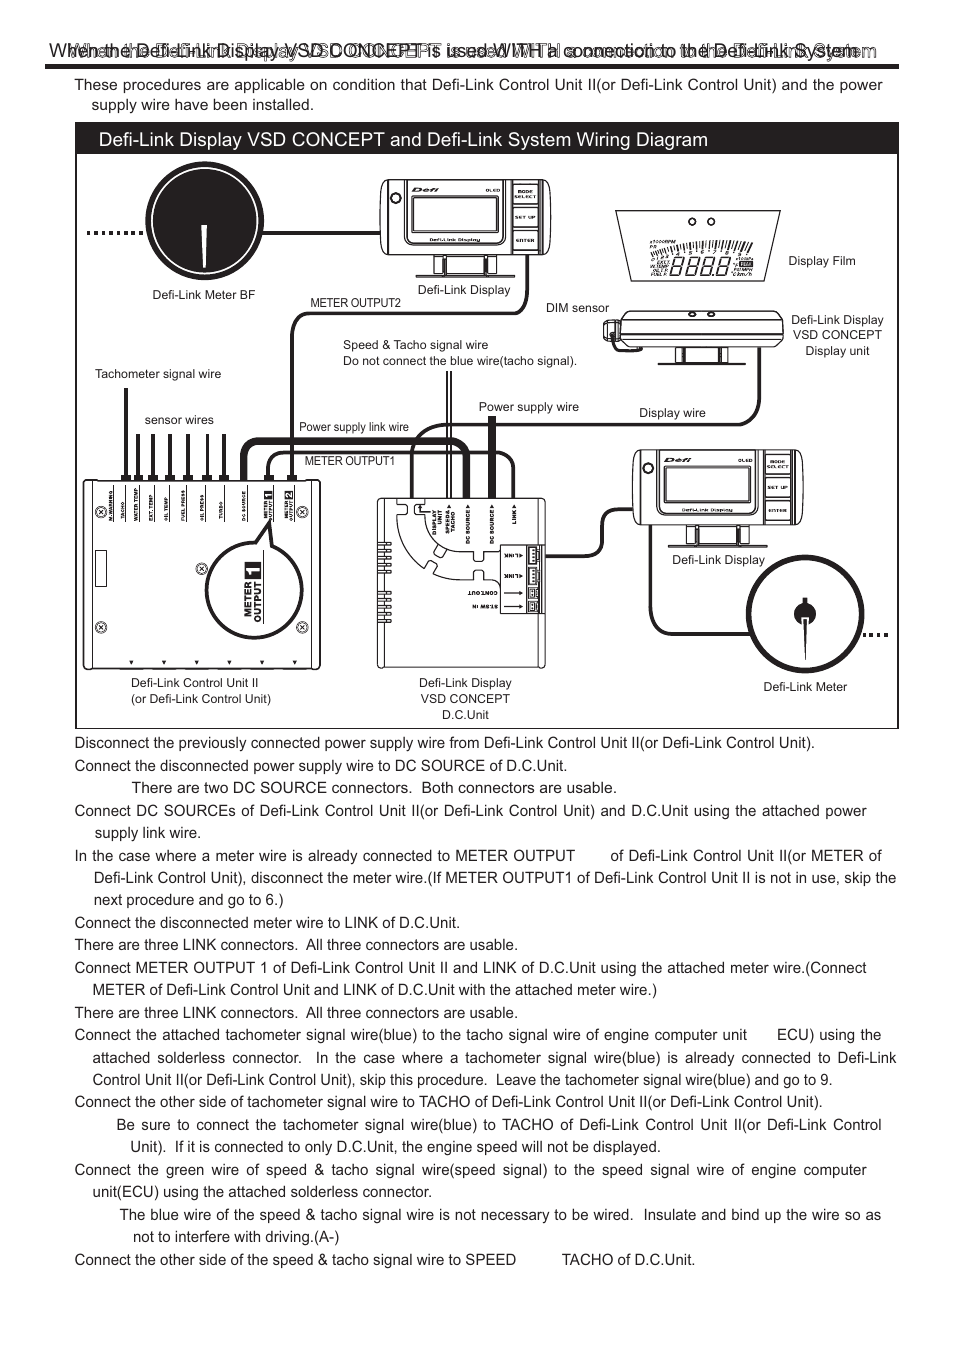 defi link vsd concept page4 defi link vsd concept user manual page 4 16 defi gauge wiring diagram at edmiracle.co